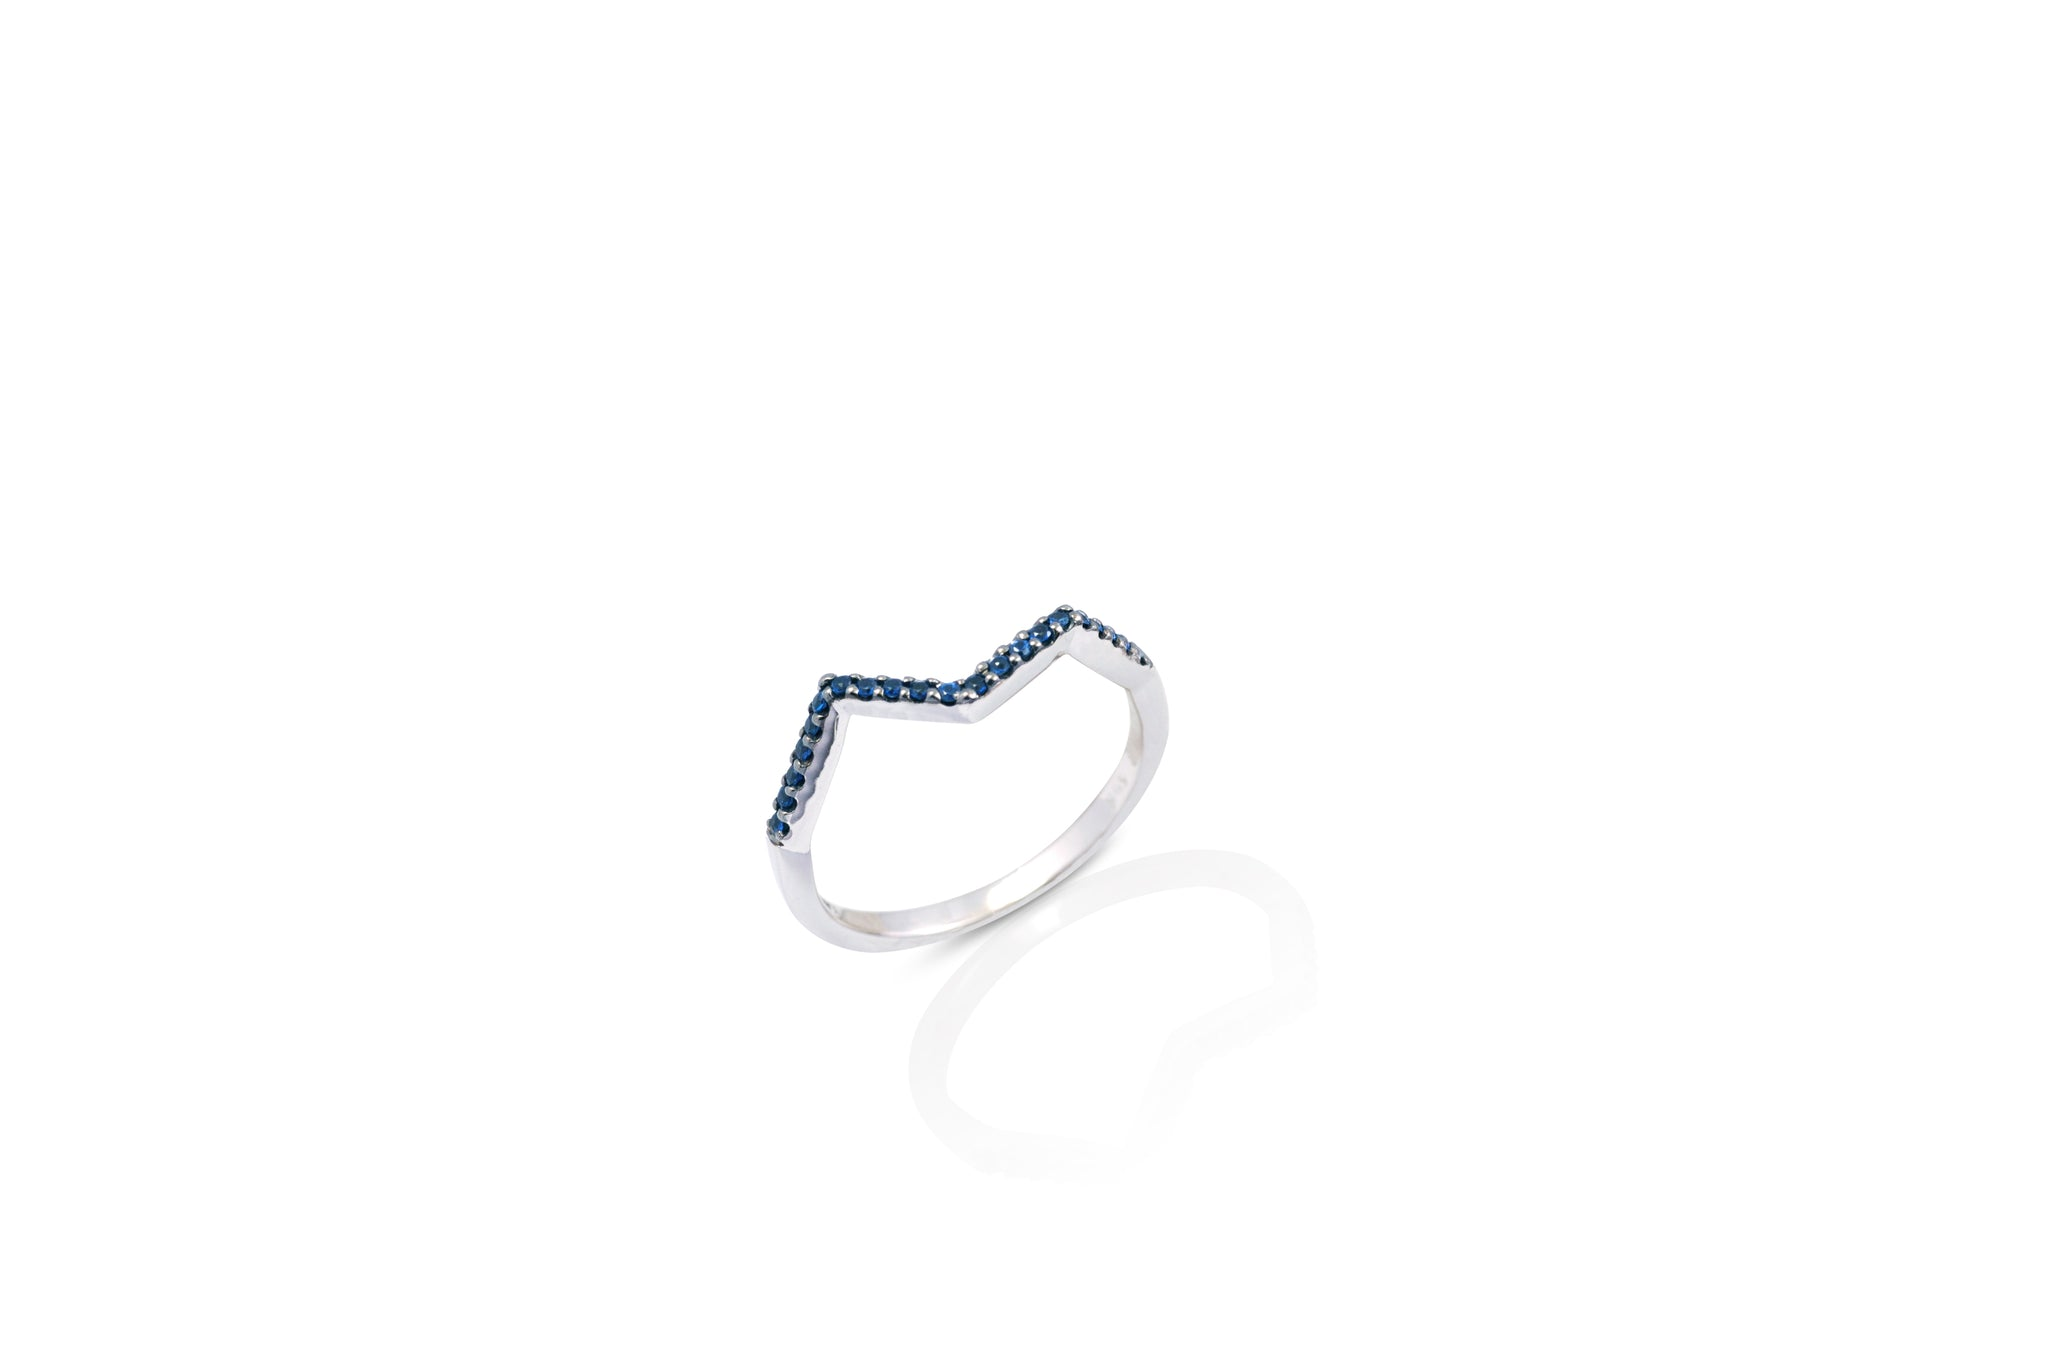 Origami Ziggy Micro Ring in Blue Sapphire